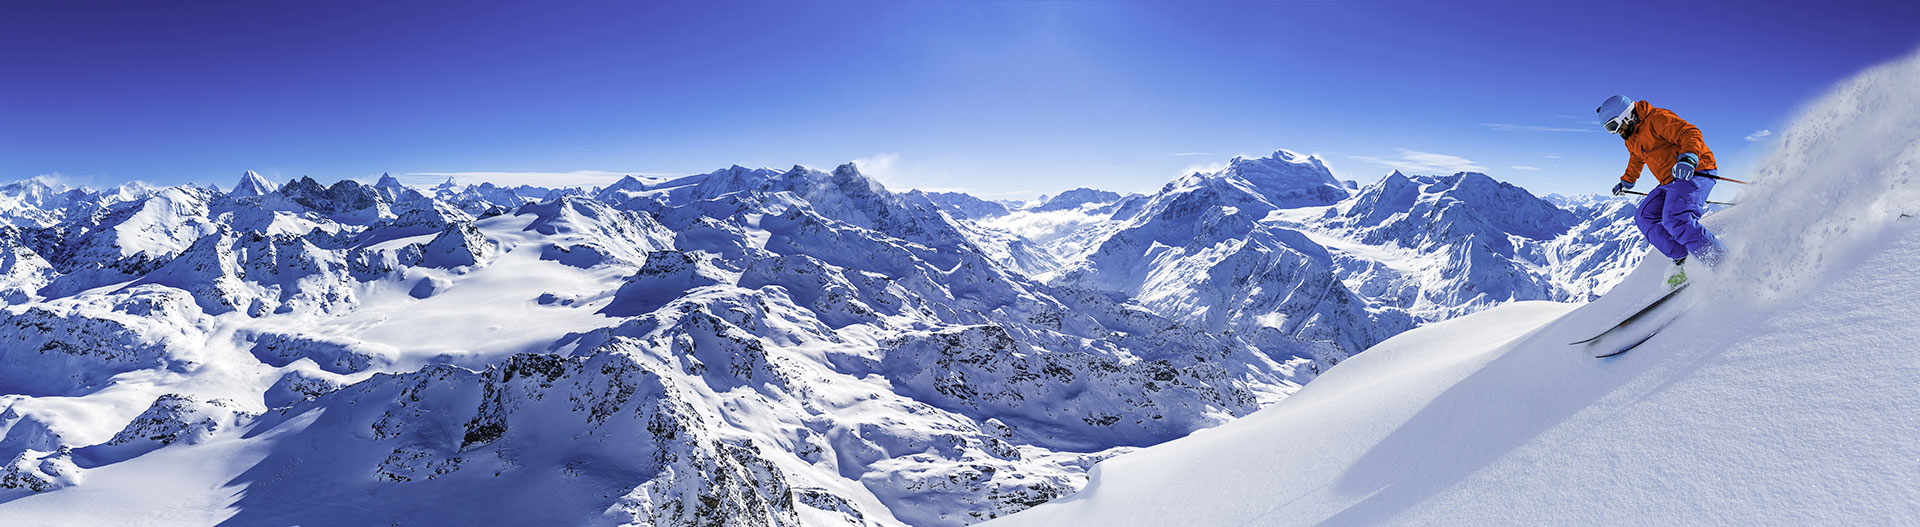 Snowy-Verbier-Switzerland.jpg